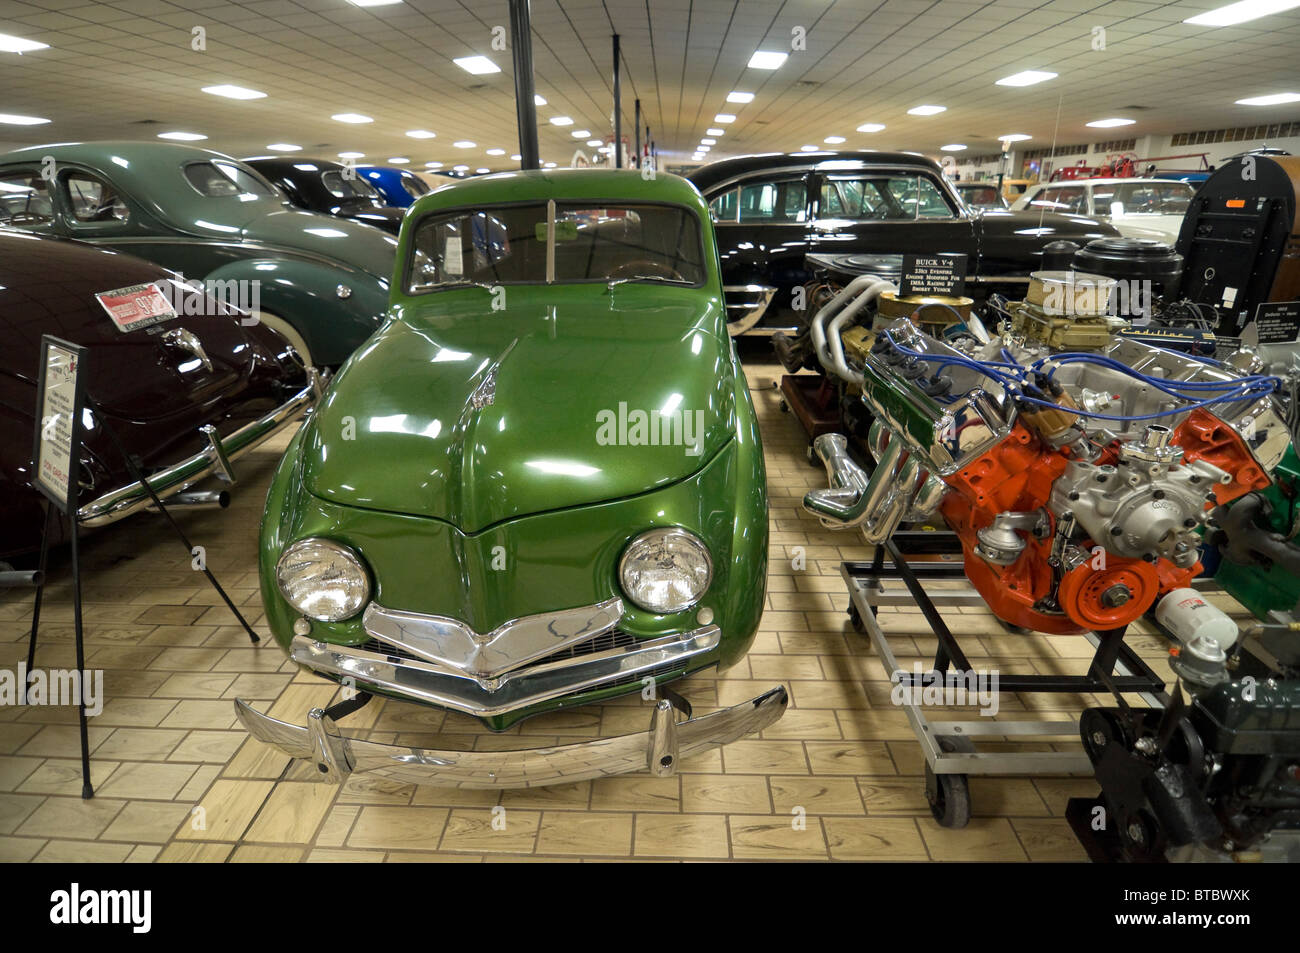 Don Garlits Museum of Classic Automobiles Ocala Florida 1948 Crosely Station Wagon 50 mpg mileage Stock Photo